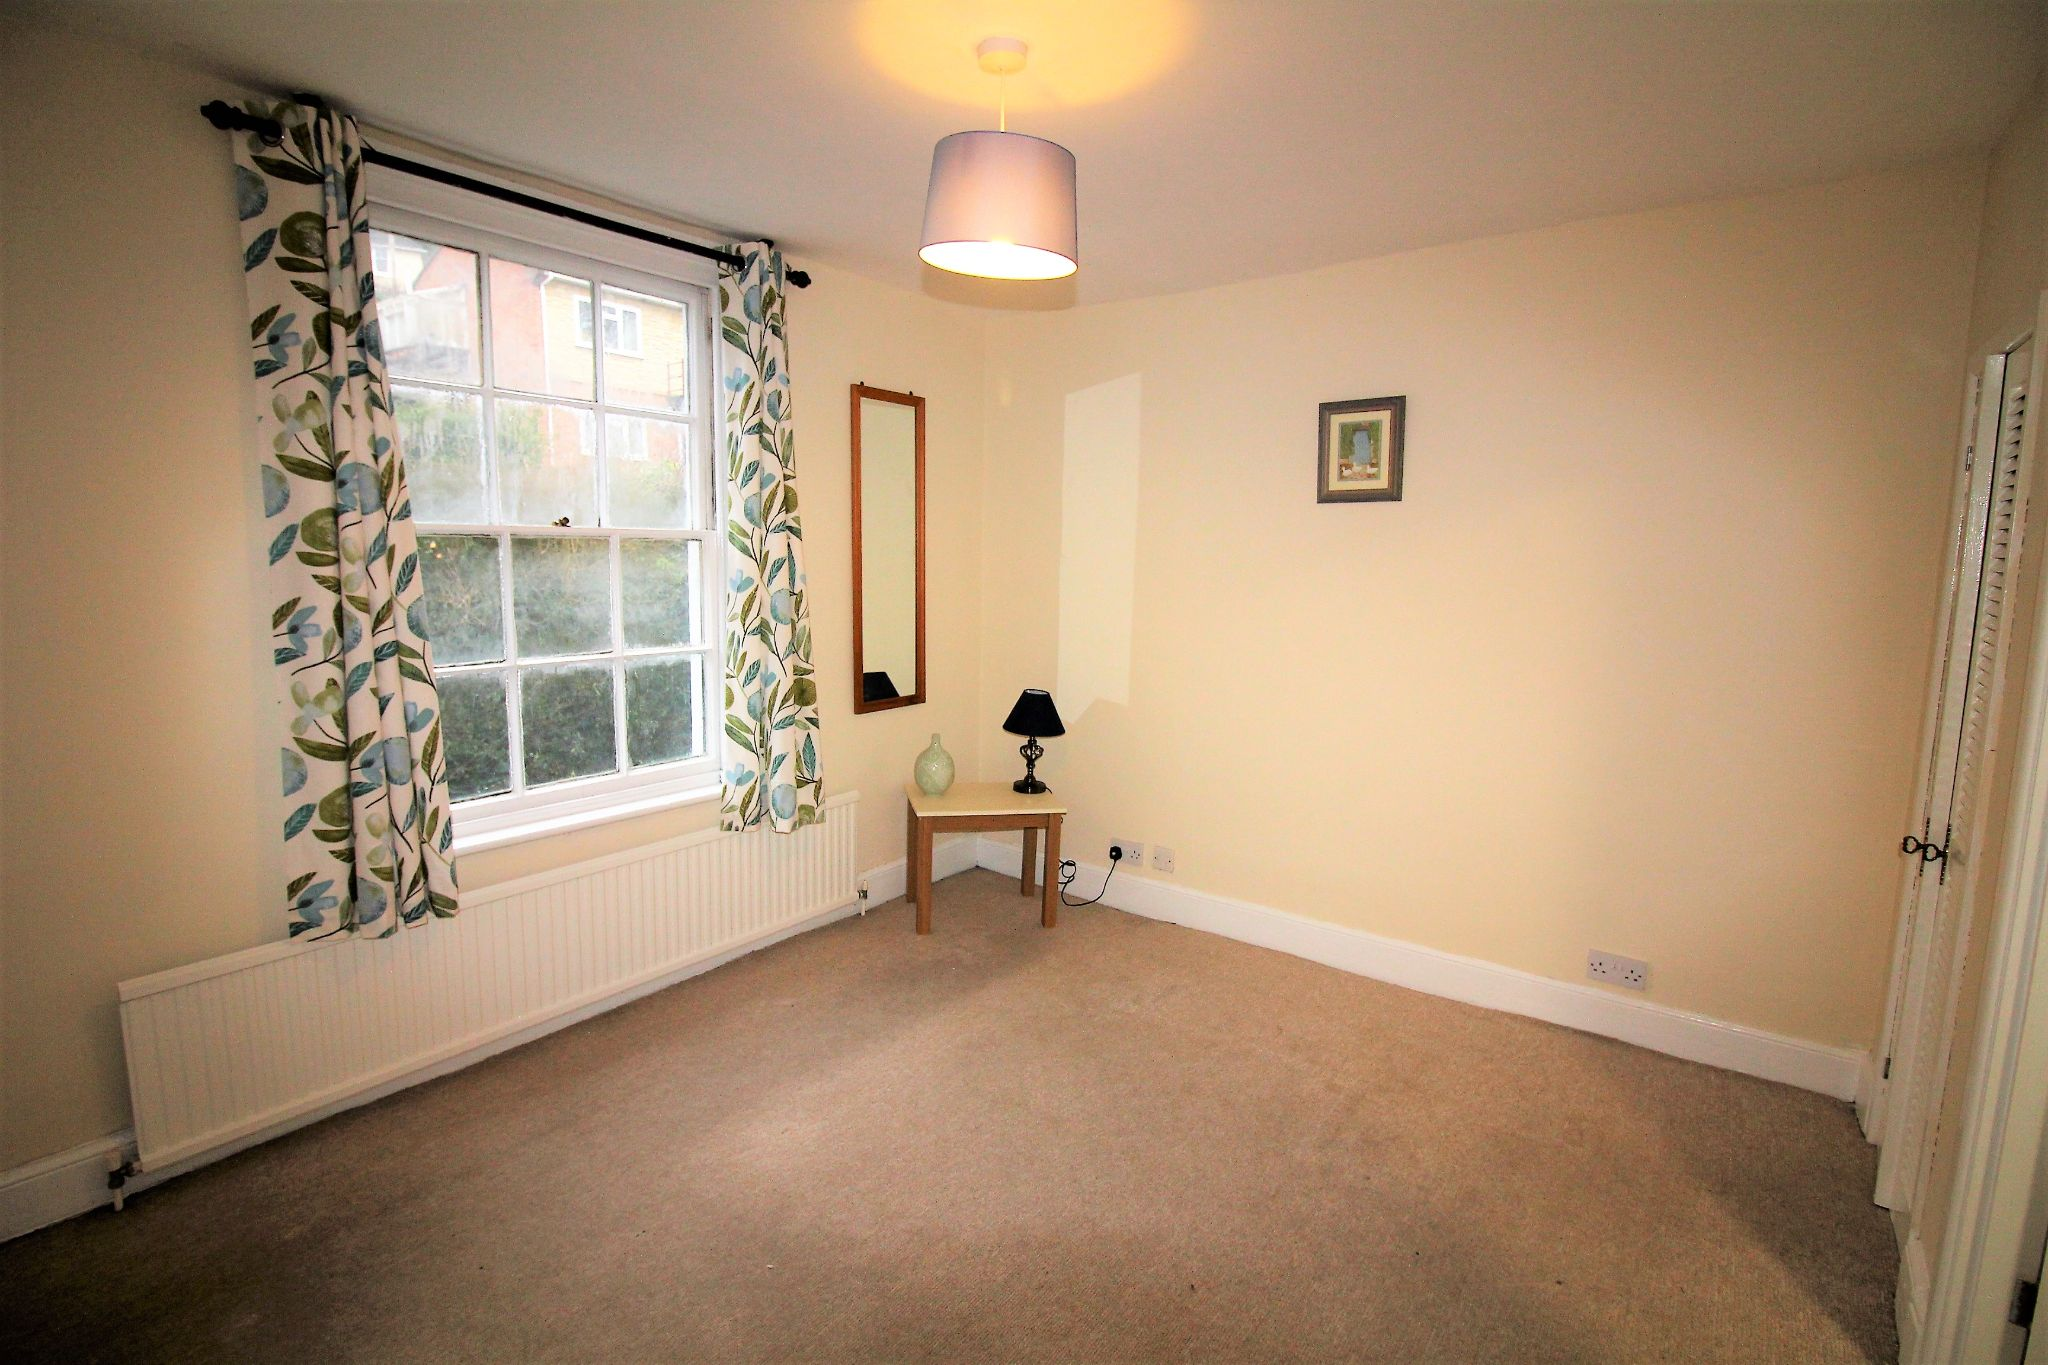 1 bedroom apartment flat/apartment For Sale in Malvern Hills - Photograph 6.